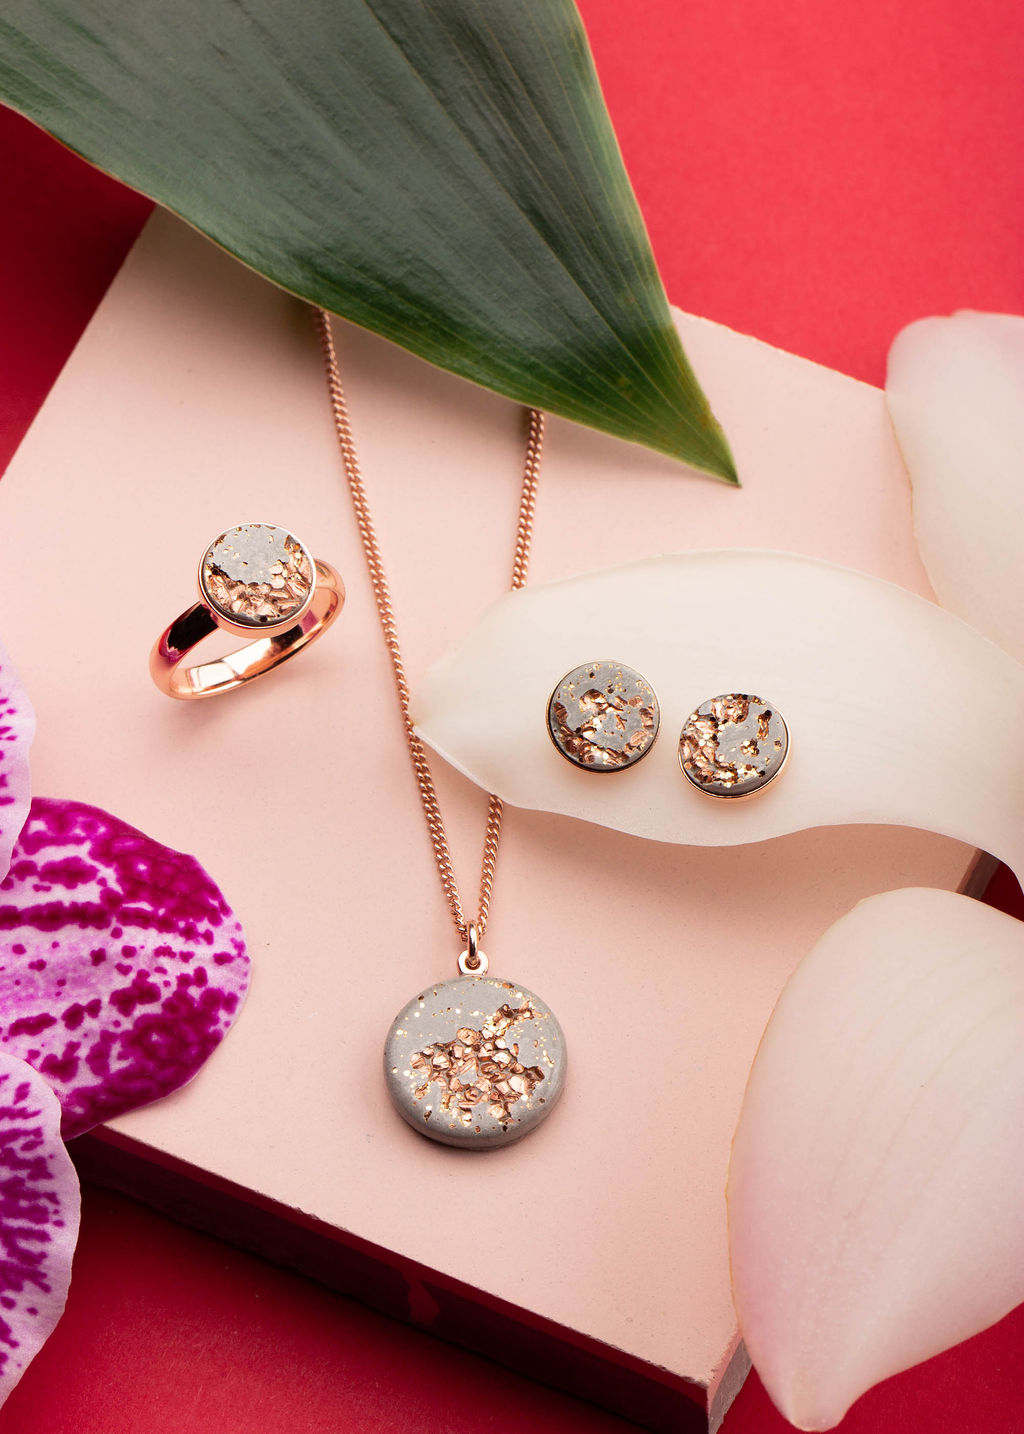 Jewelry Styling and Photography